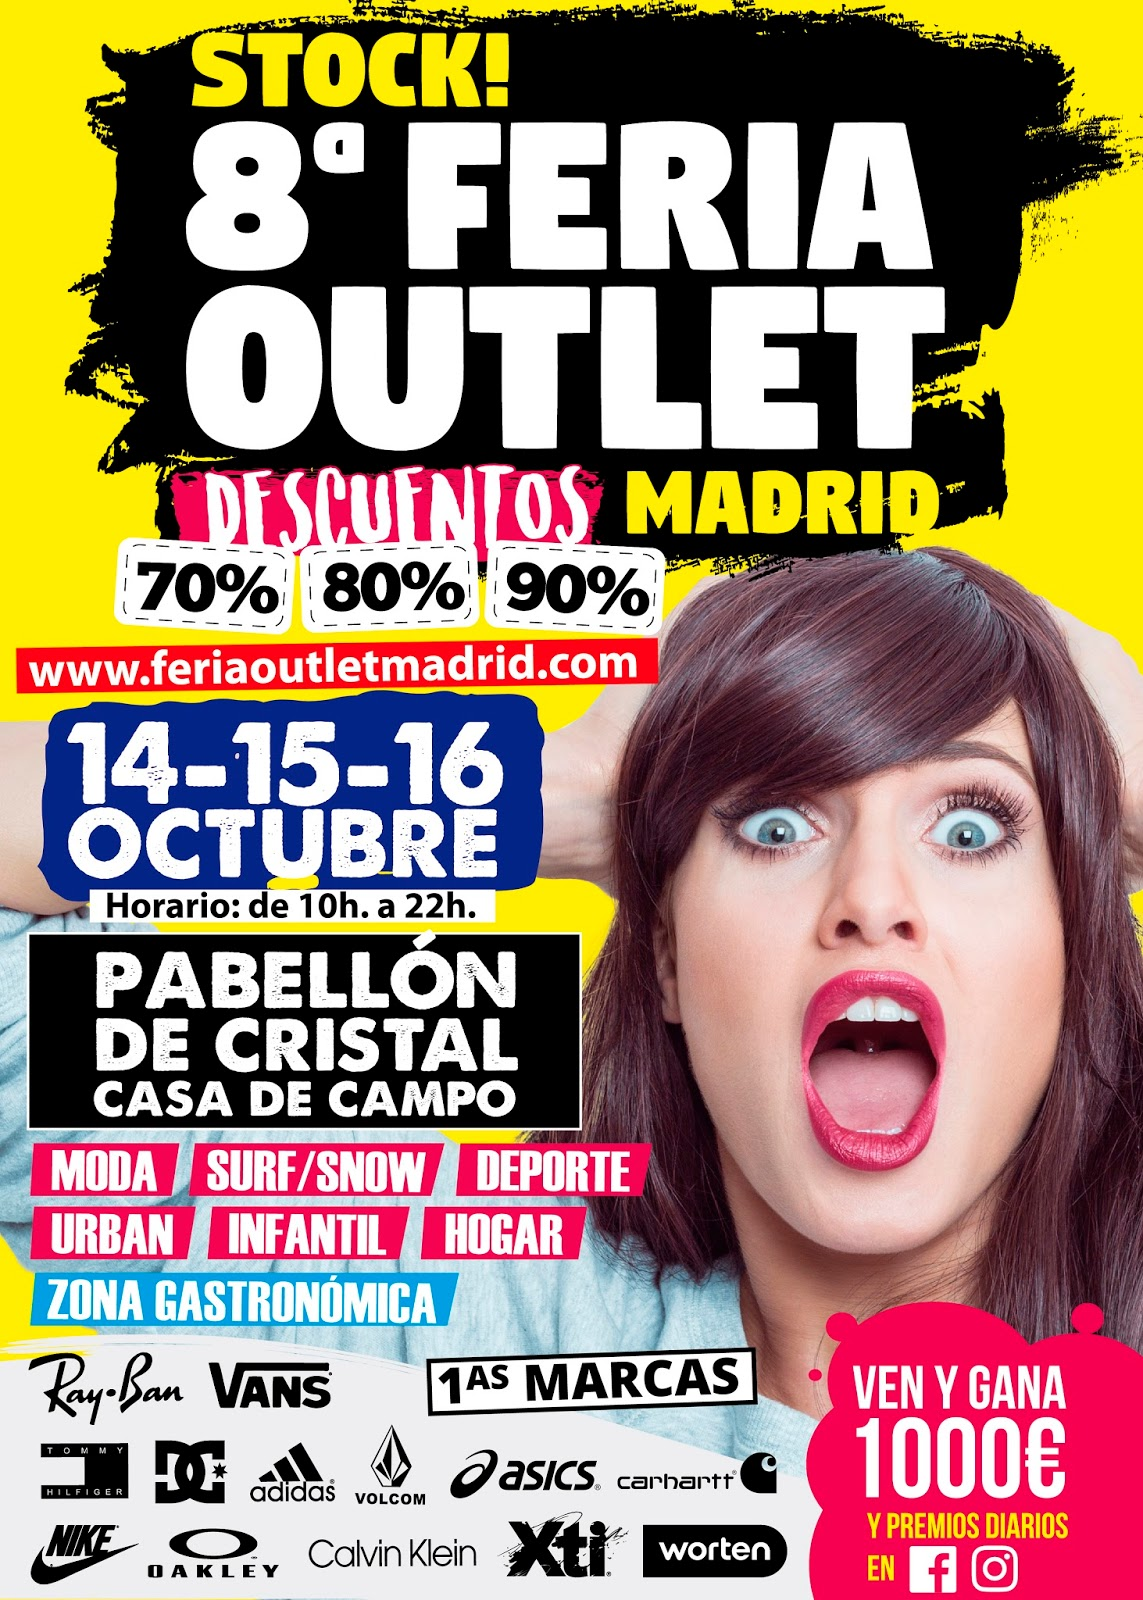 14 16 oct stock feria outlet madrid descuentazos de for Feria outlet malaga 2017